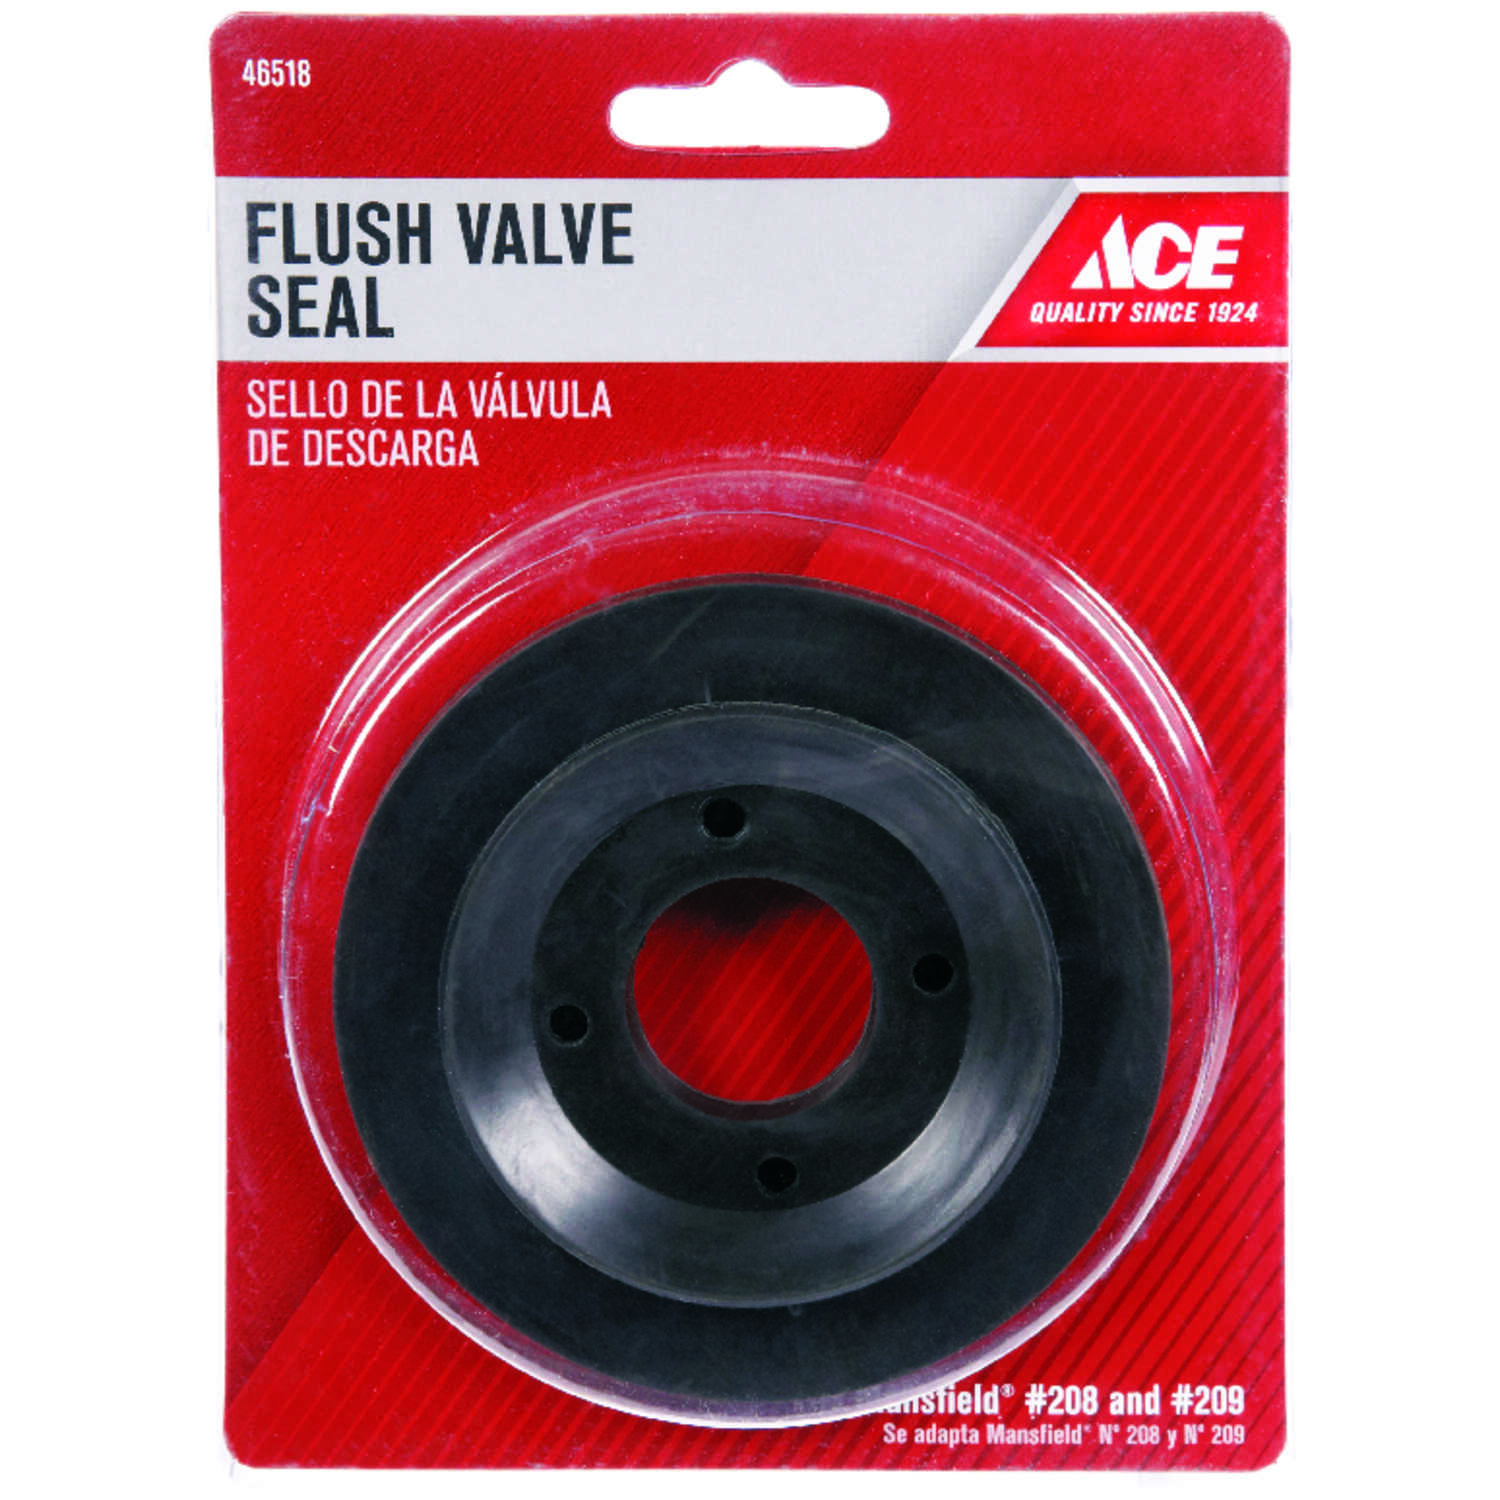 Ace  Flush Valve Seal  Plastic  For Mansfield